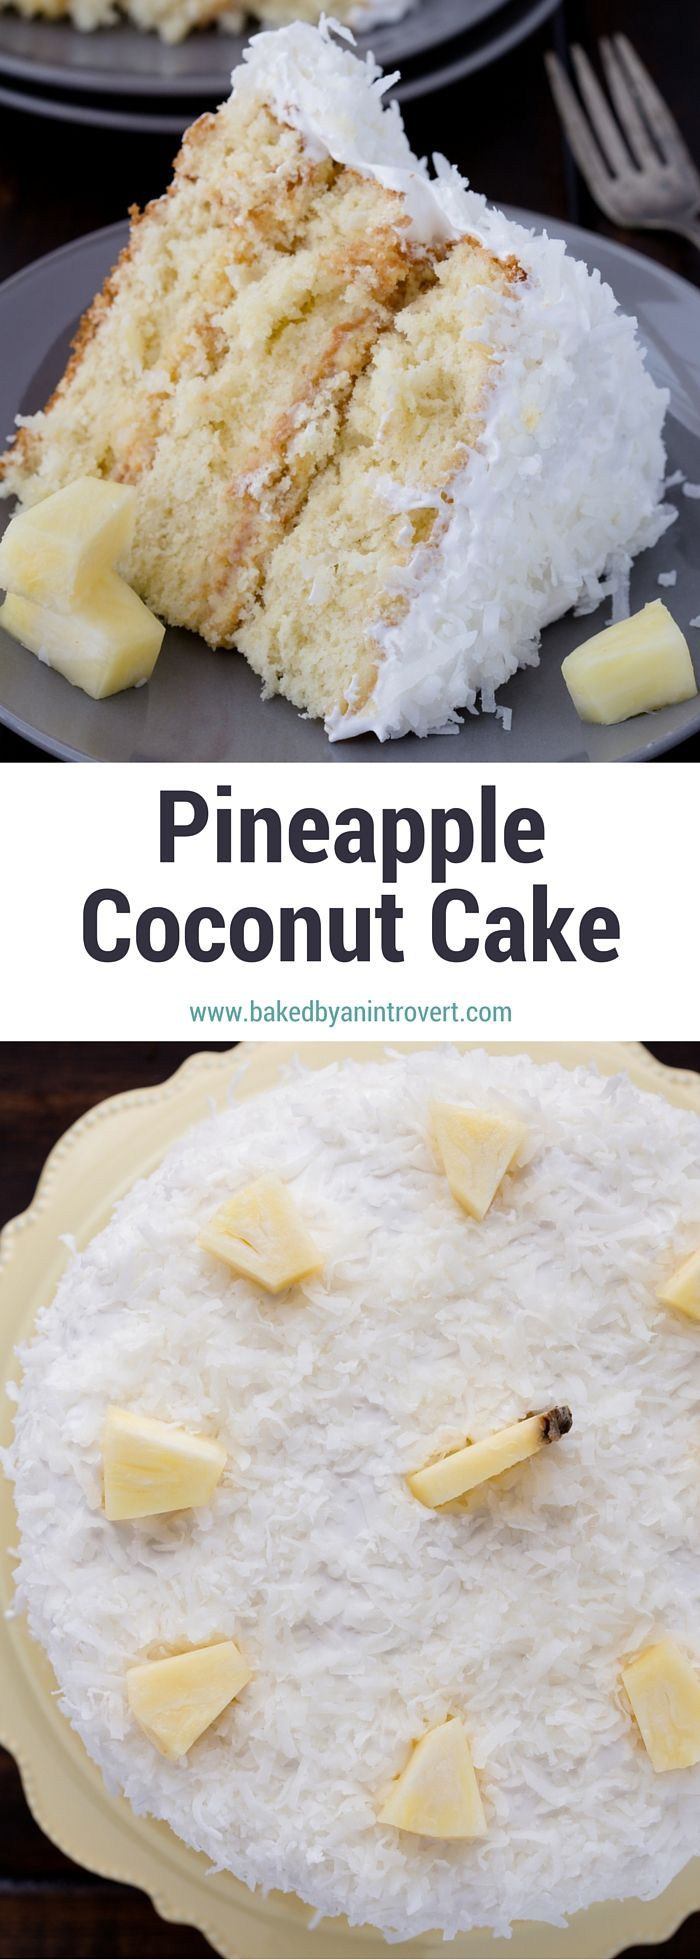 If you are crazy for pineapple and coconut, then this triple layer Pineapple Coconut Cake is for you! Three layers of homemade moist, fluffy coconut cake separated by rich and sweet pineapple curd and frosted with light and airy 7-minute frosting.